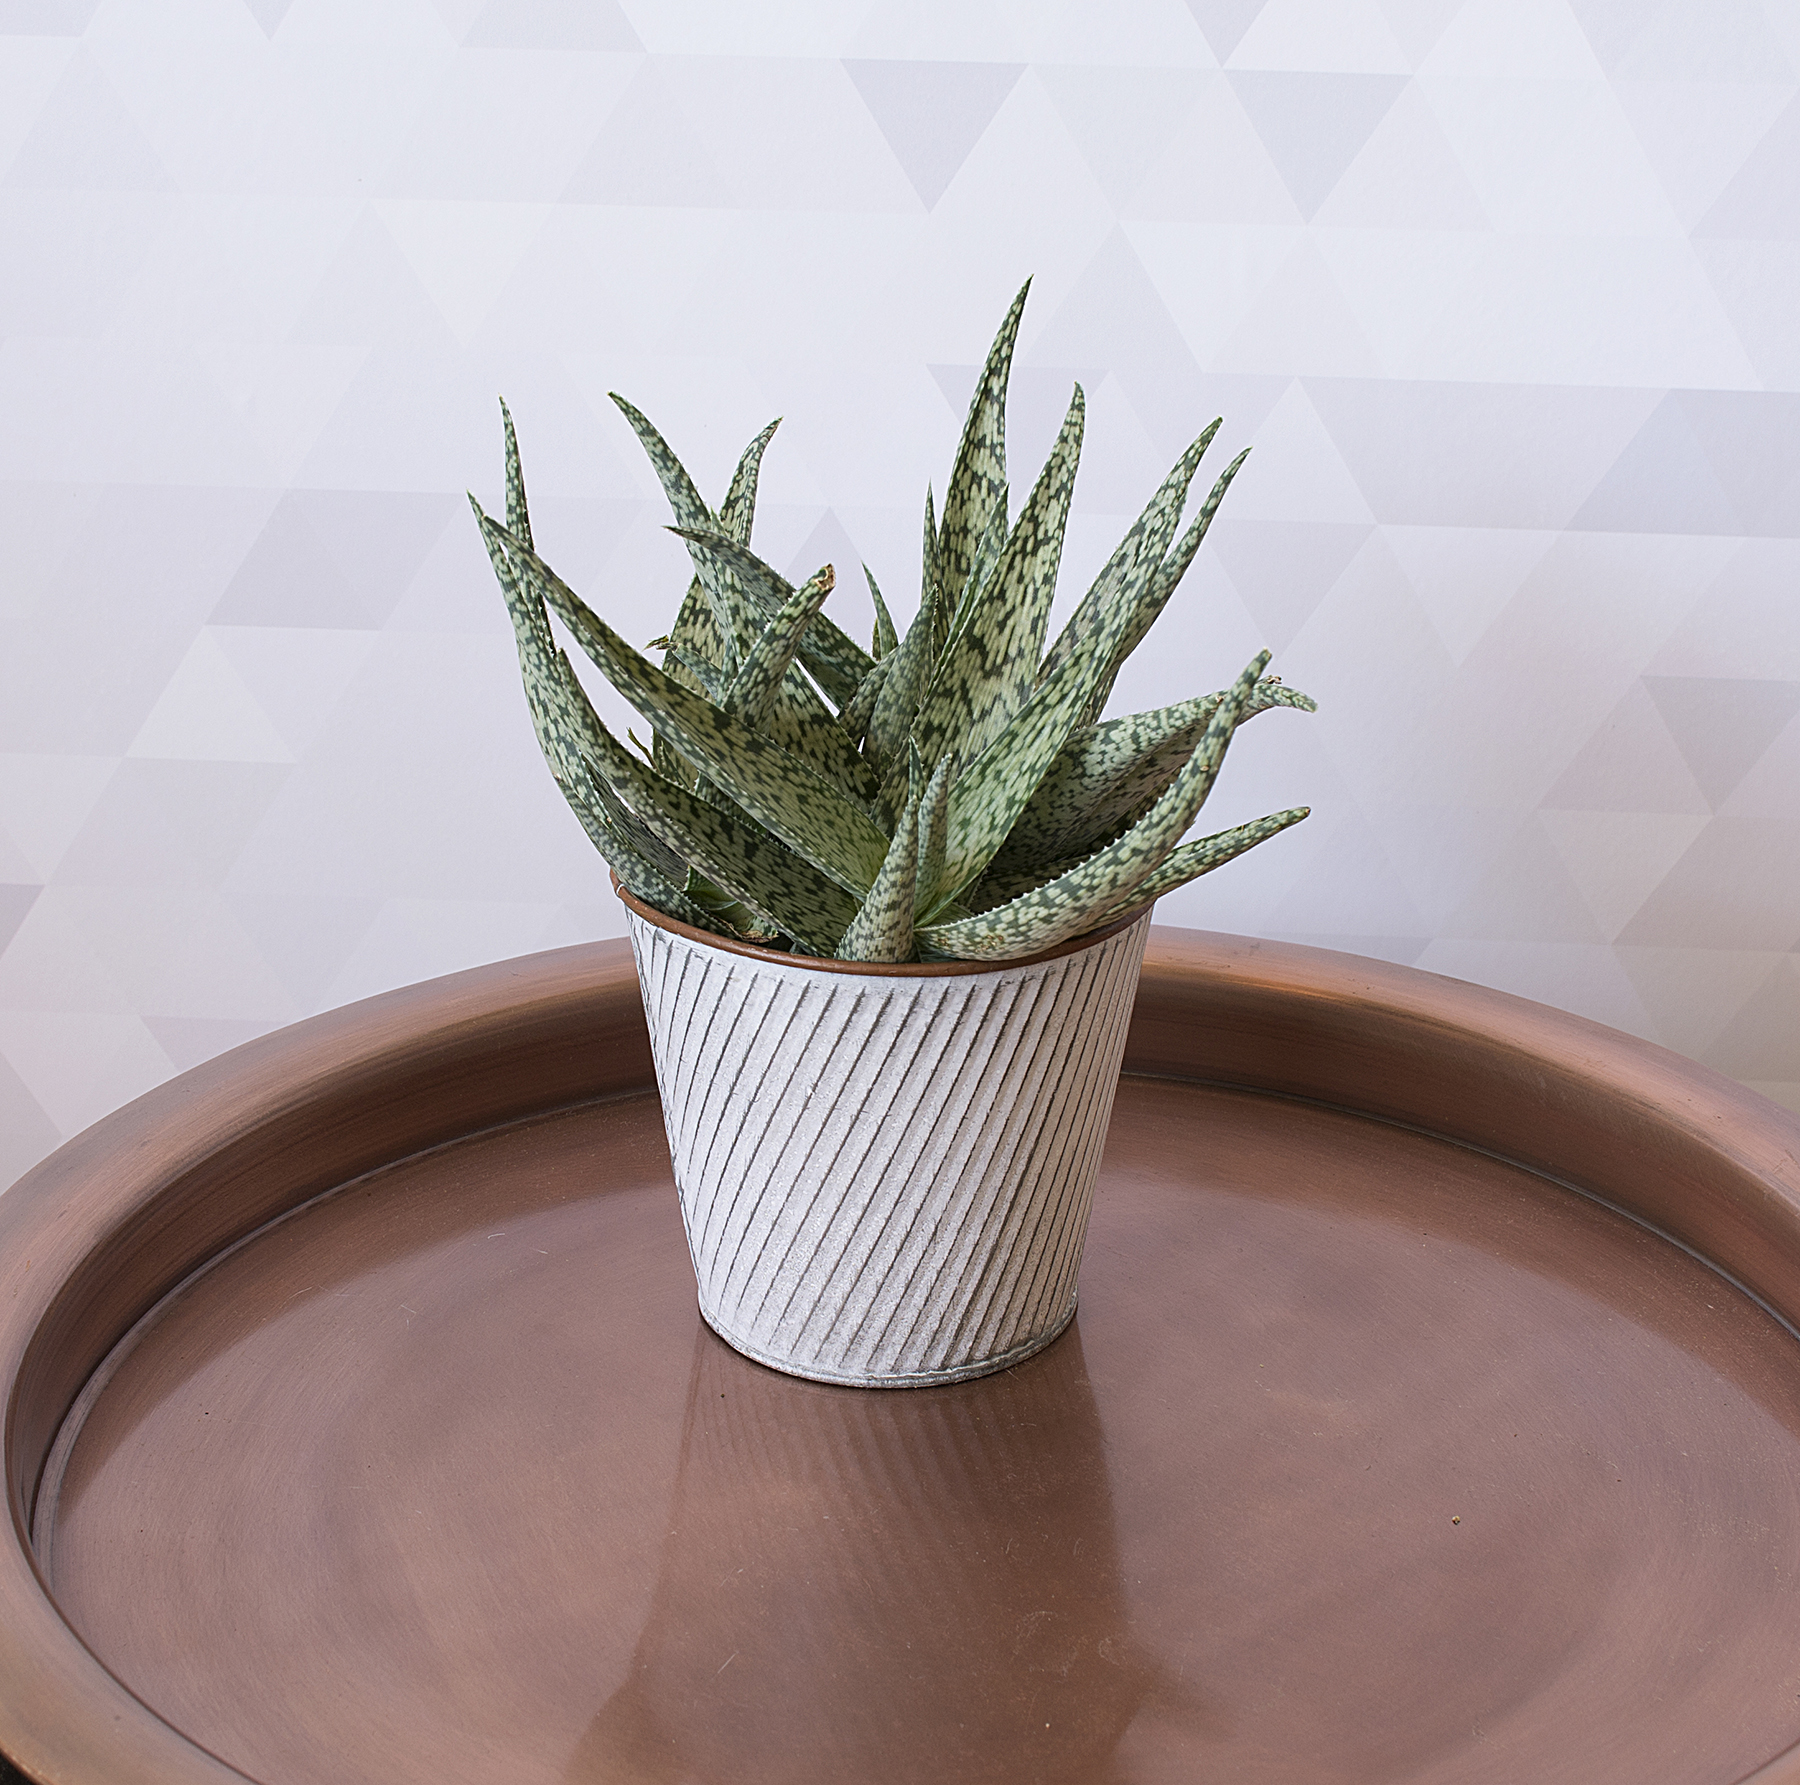 In a Dry Room: Aloe